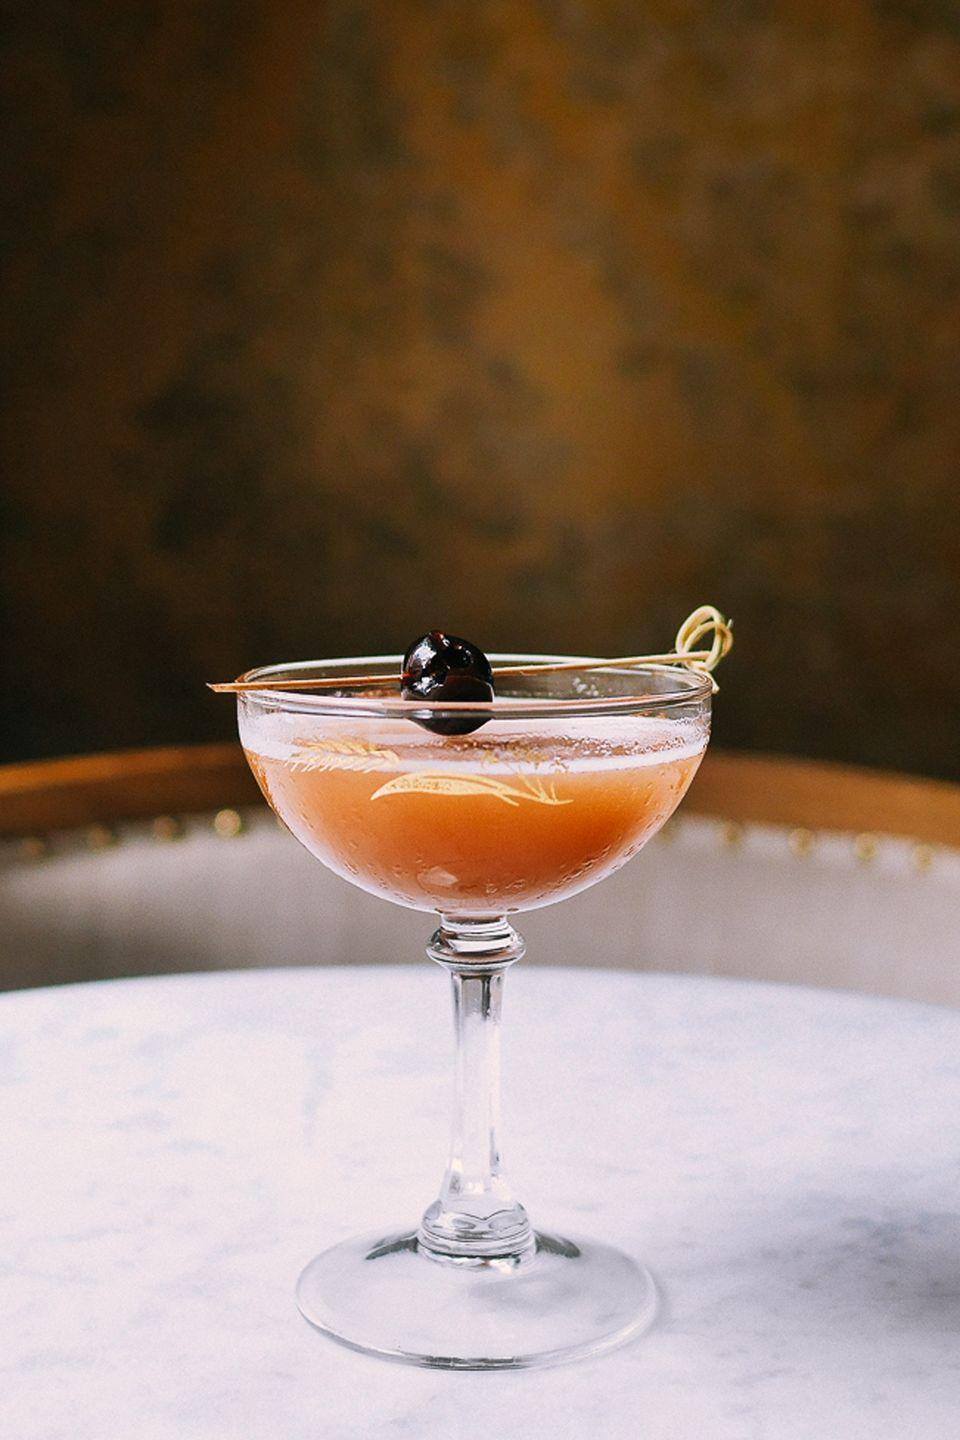 """<p><strong><strong>Ingredients</strong></strong></p><p>1.5 oz cognac<br>.5 oz <a href=""""https://www.liquor.com/recipes/cinnamon-syrup/"""" rel=""""nofollow noopener"""" target=""""_blank"""" data-ylk=""""slk:cinnamon syrup"""" class=""""link rapid-noclick-resp"""">cinnamon syrup<br></a>1 large spoonful of apple butter or apple syrup</p><p><strong><strong>Instructions</strong></strong></p><p>Shake ingredients before pouring into a sophisticated coupe glass. Garnish with a cinnamon stick.</p><p><em>From <a href=""""http://www.celestechicago.com/"""" rel=""""nofollow noopener"""" target=""""_blank"""" data-ylk=""""slk:Celeste"""" class=""""link rapid-noclick-resp"""">Celeste</a> in Chicago, IL</em></p>"""